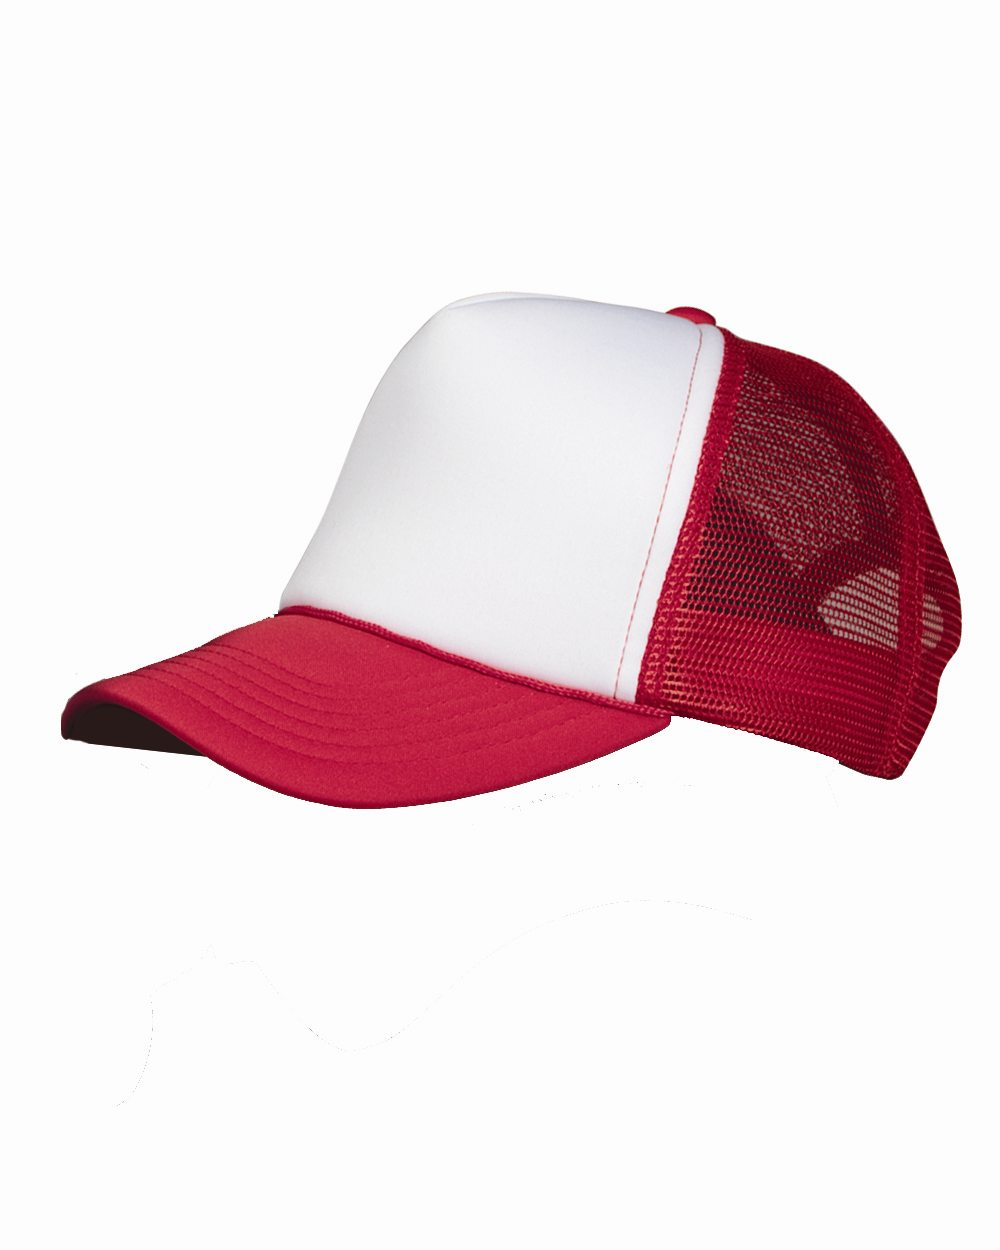 Valucap VC700 - Foam Trucker Cap